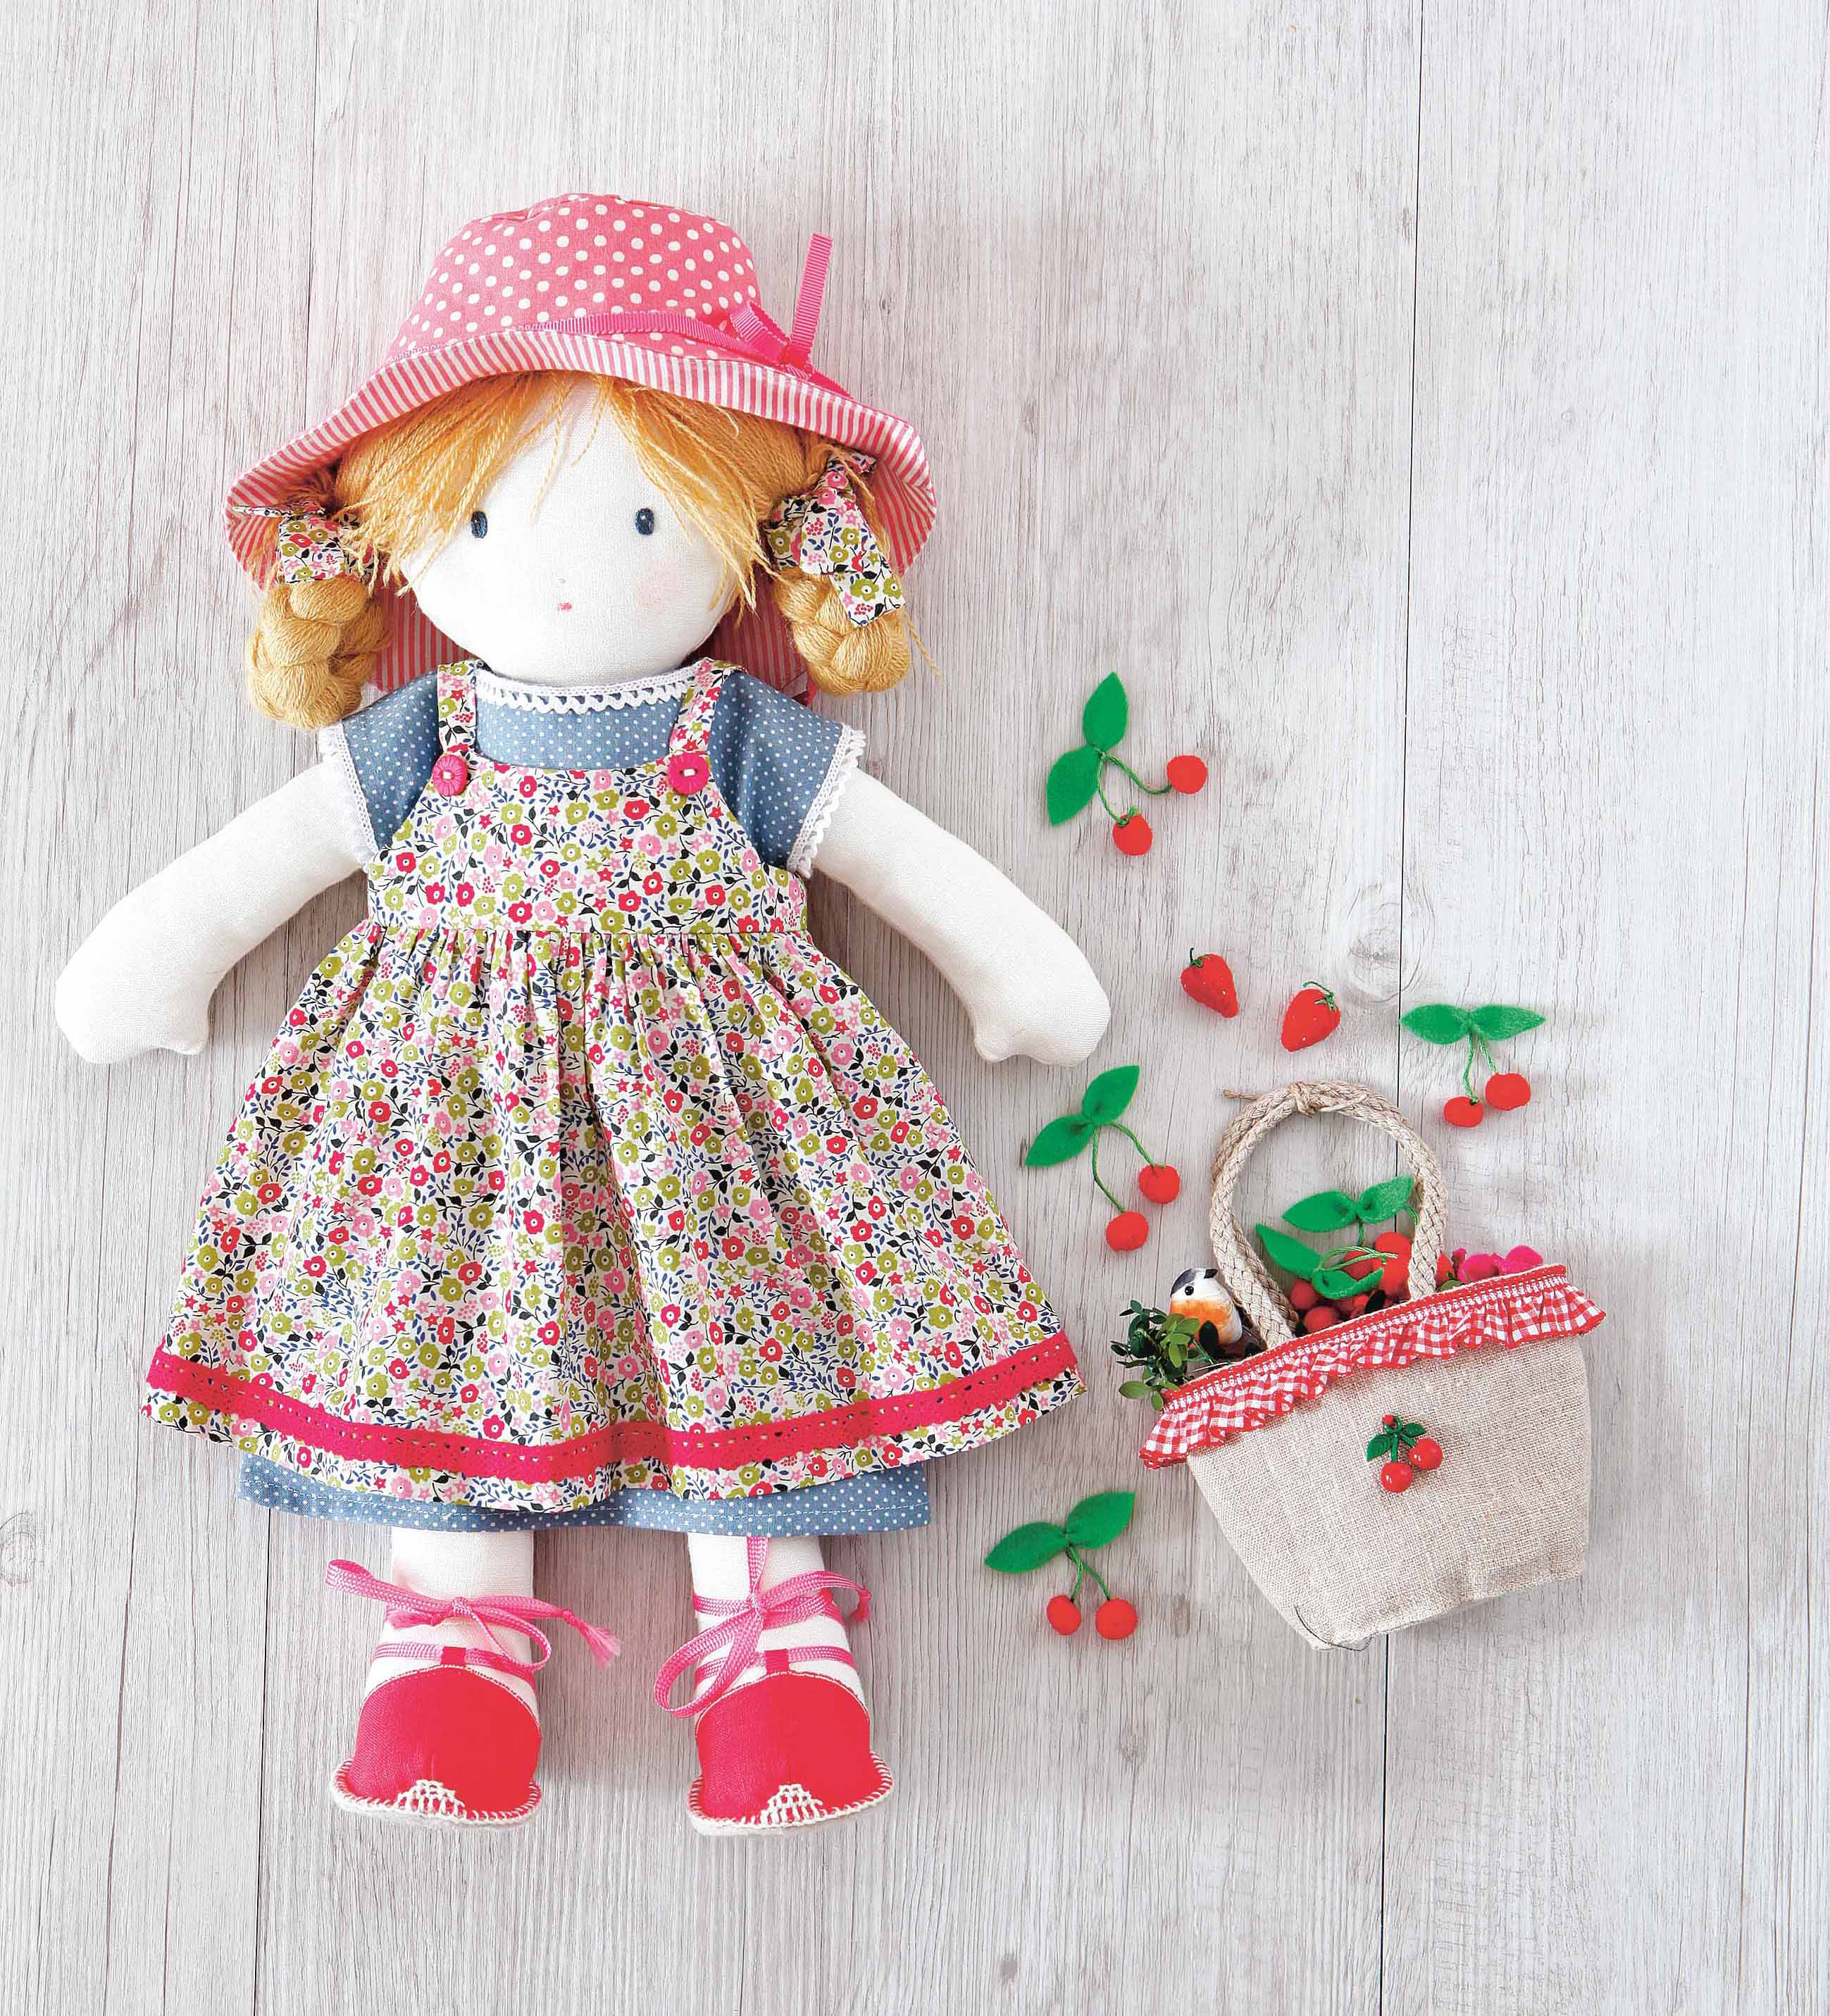 Doll Patterns Best Of My Rag Doll Adorable Dolls to Sew Of Doll Patterns Best Of Gingermelon Dolls My Felt Doll Knitted Outfit Patterns